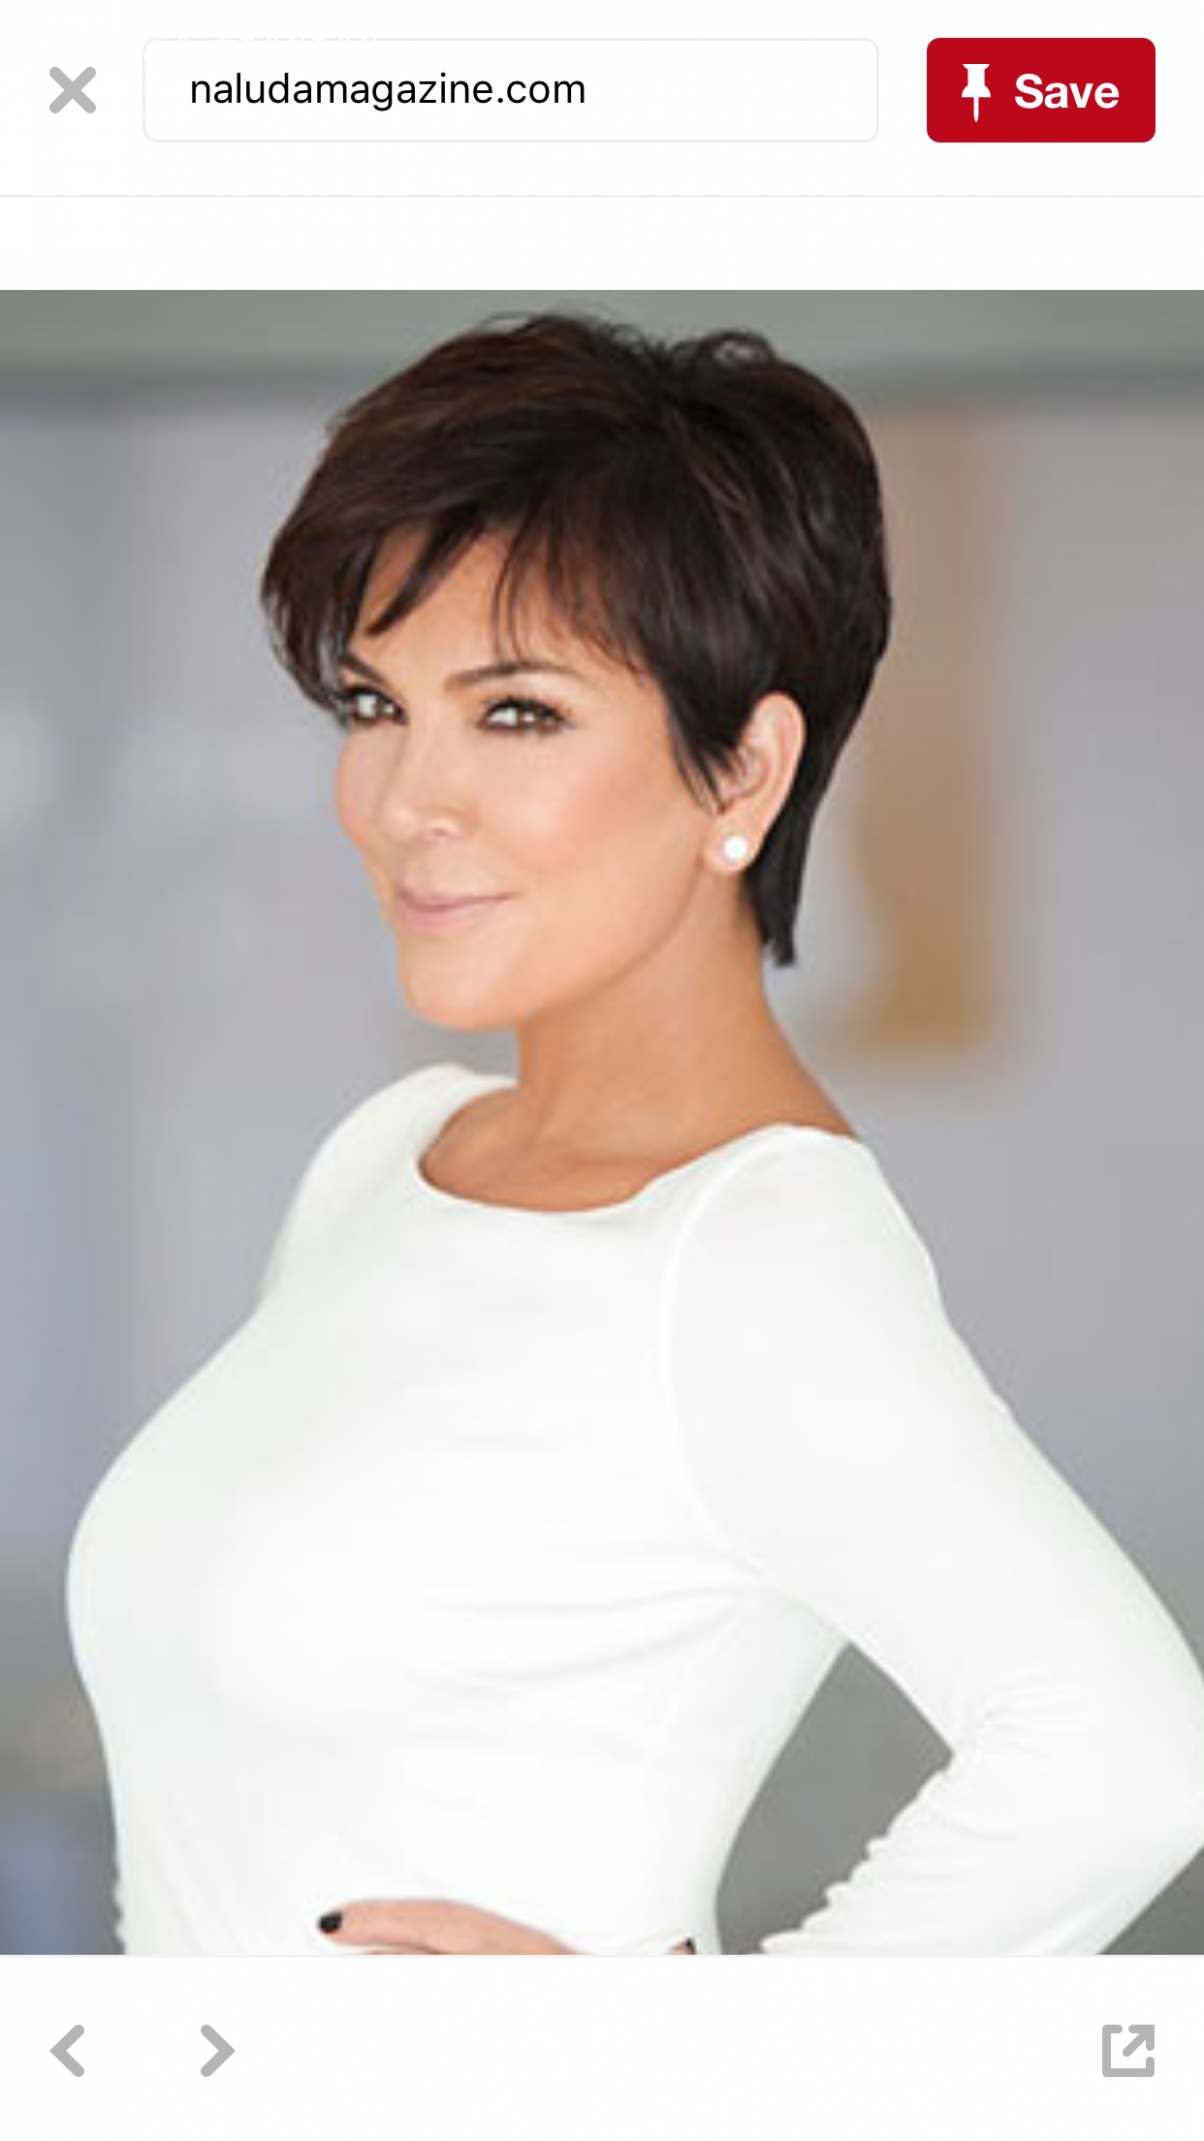 The way her haircut is styled | jenner hair, kris jenner haircut